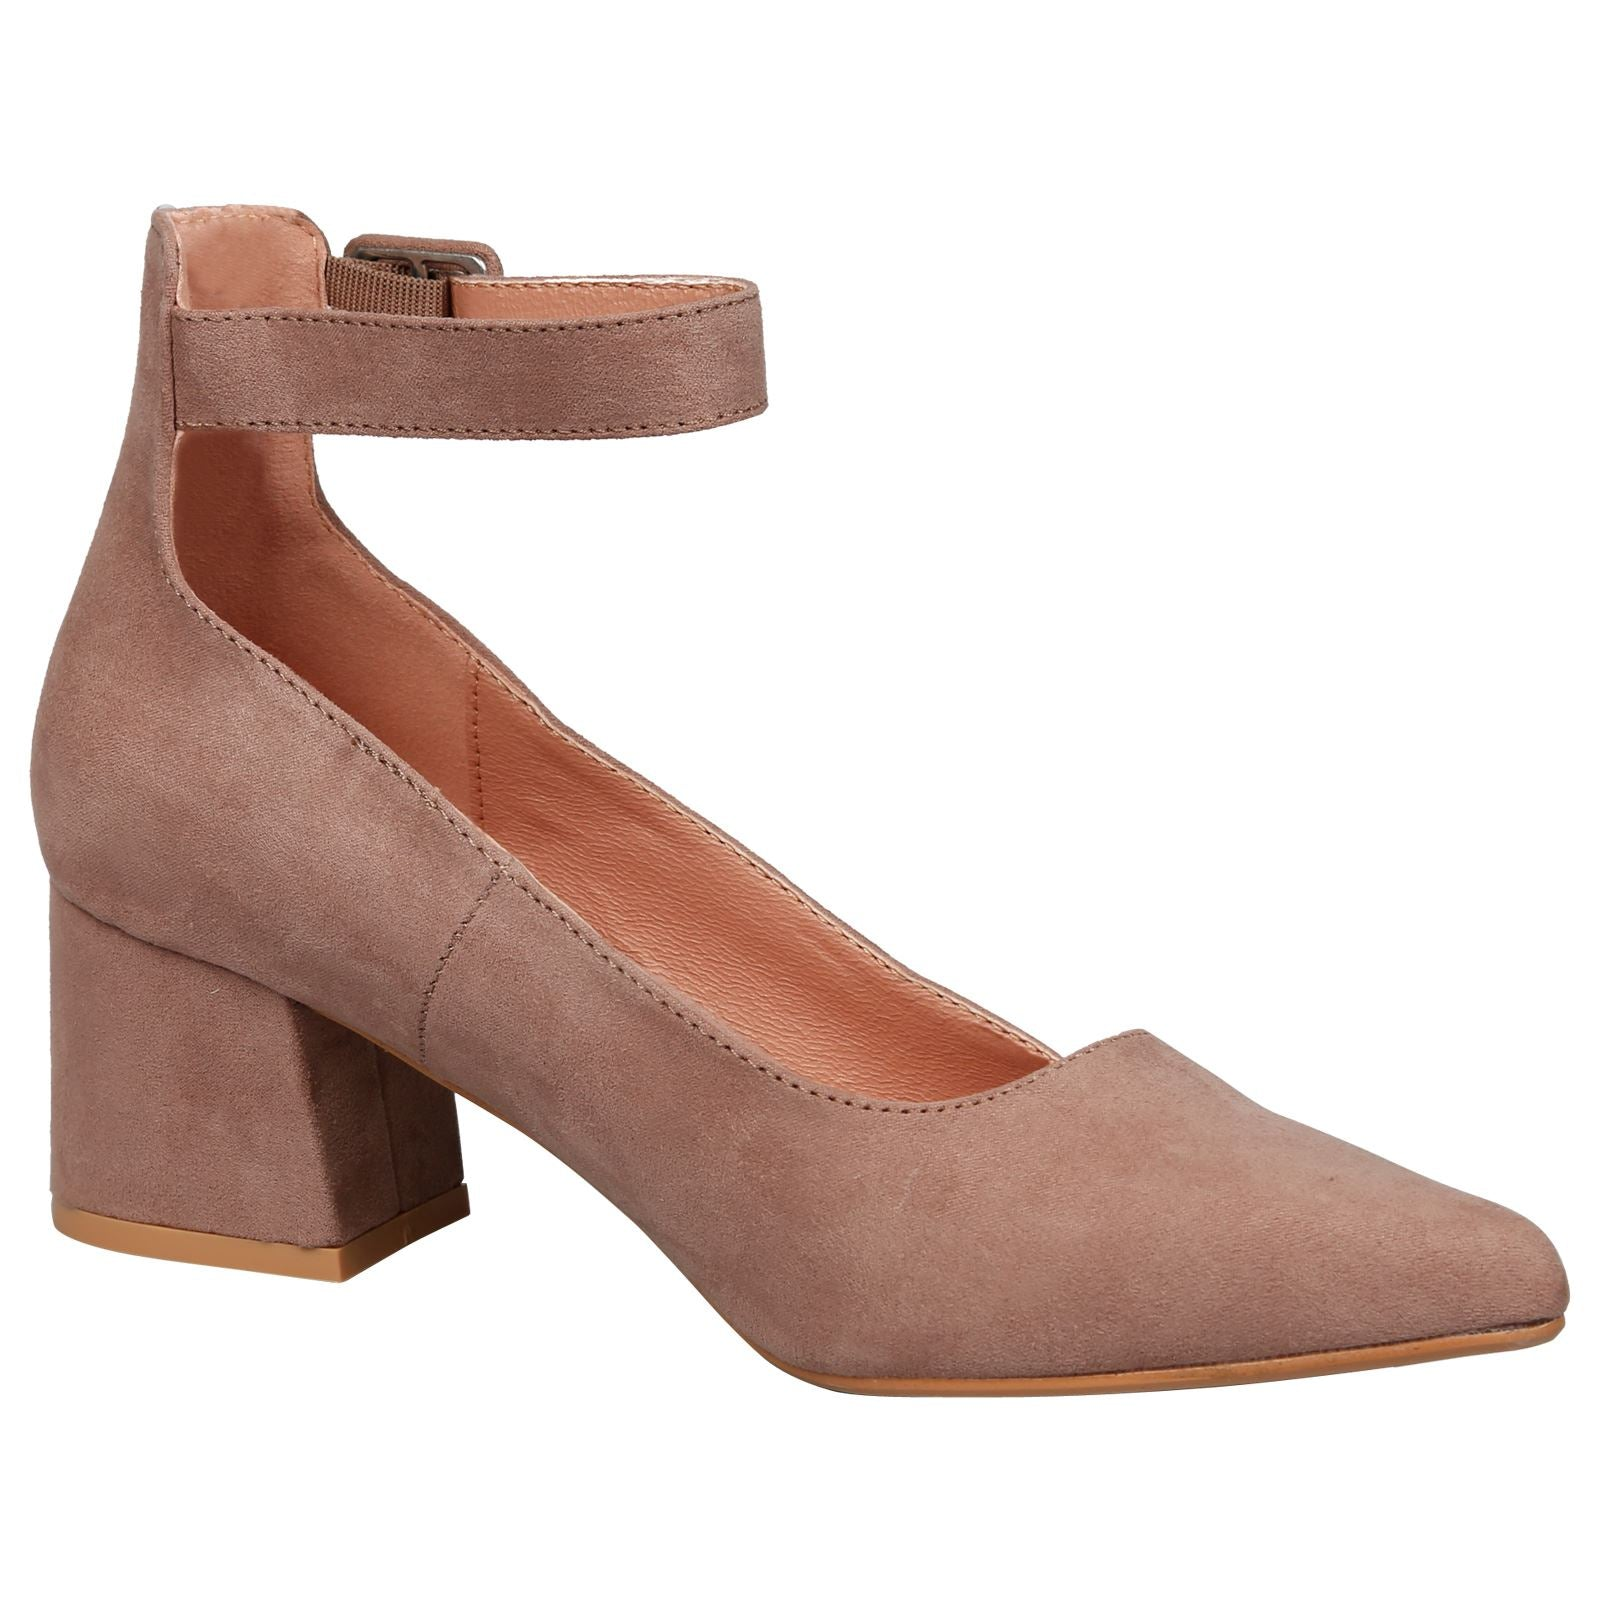 Annalise Ankle Cuff Low Heel Shoes in Tan Faux Suede